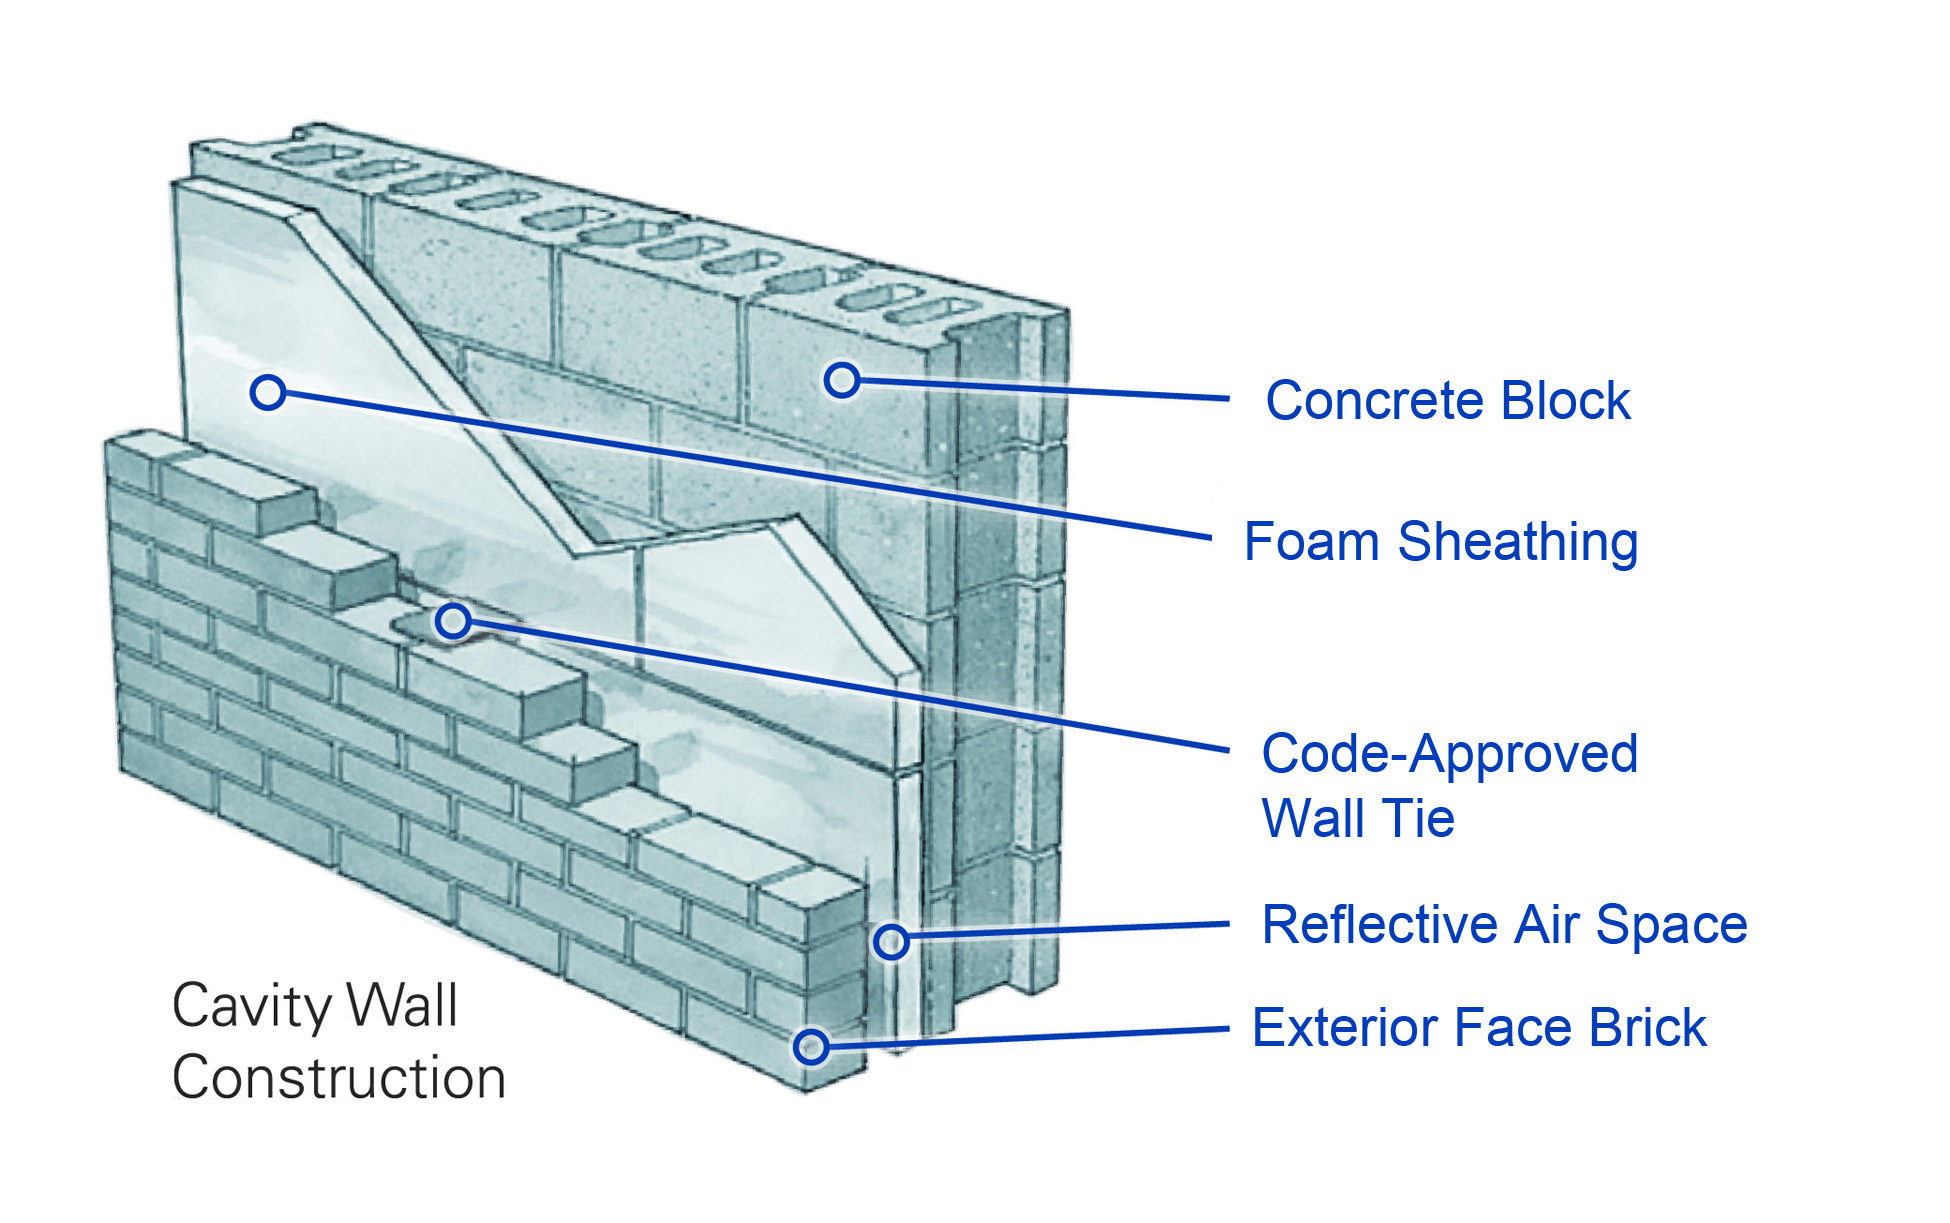 In Addition To Exterior Applications, Polyisocyanurate (polyiso) Foam  Sheathing Can Be Installed As